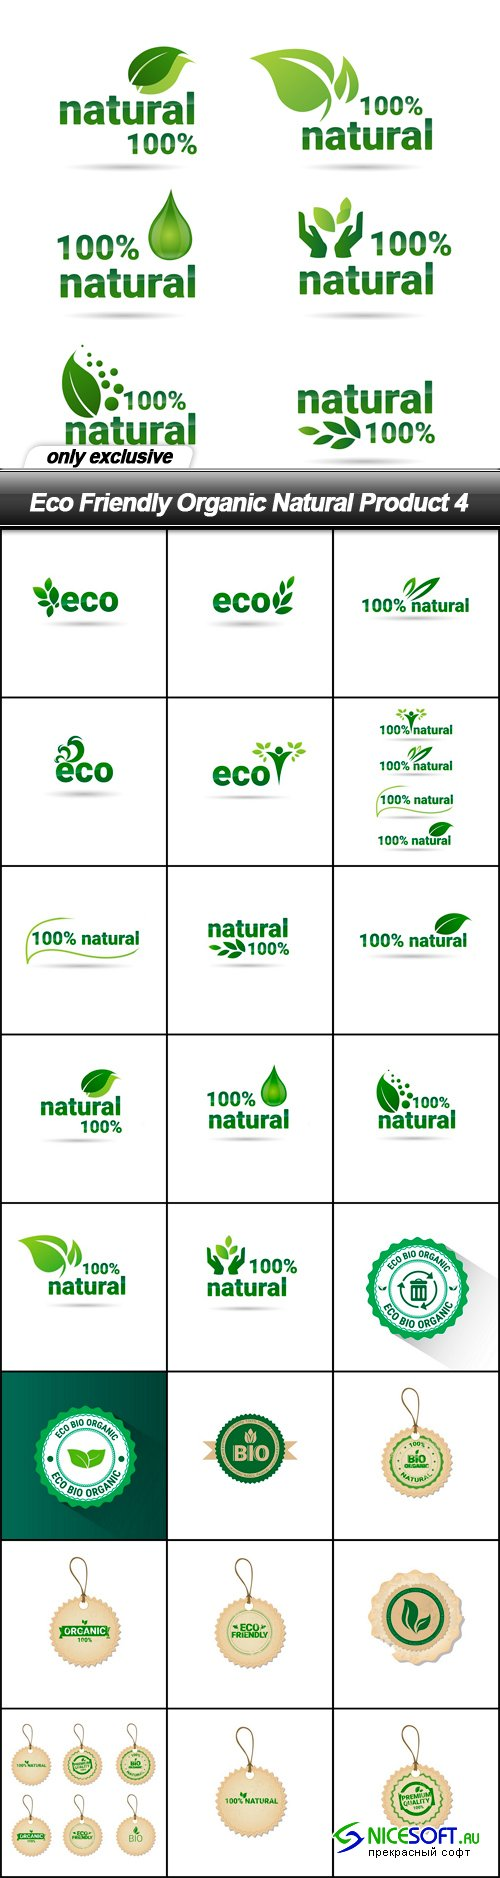 Eco Friendly Organic Natural Product 4